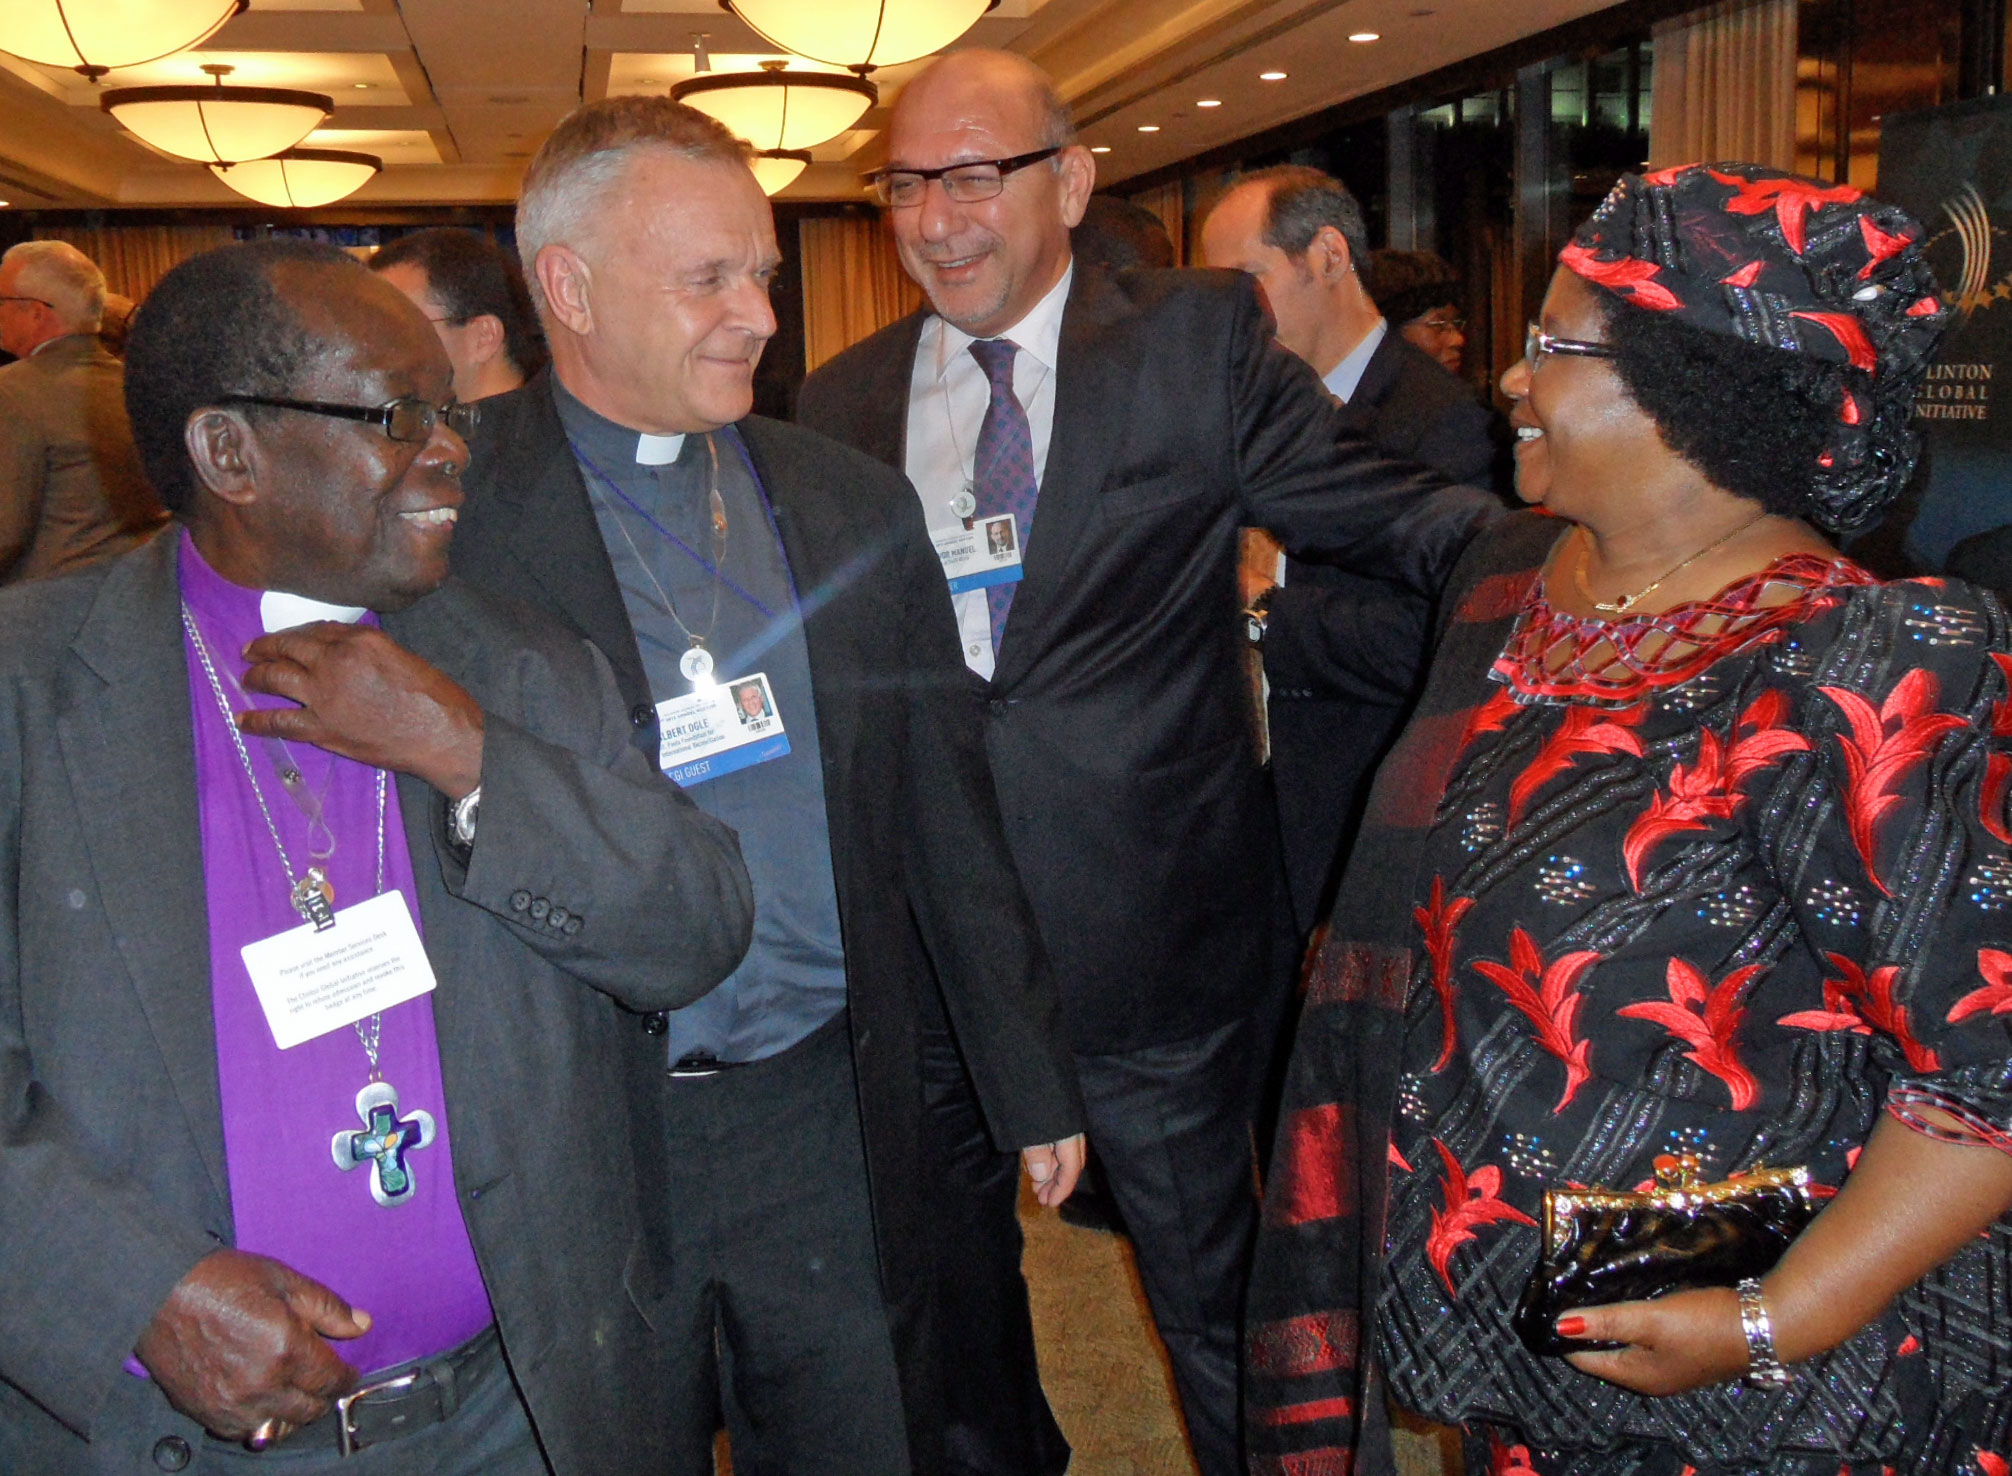 At Clinton Global Initiative 2012 meeting, from left to right, Bishop Christopher Senyonjo of Uganda; the Rev. Canon Albert Ogle; Trevor Manuel, minister of national planning in South Africa; and Joyce Banda, president of Malawi.